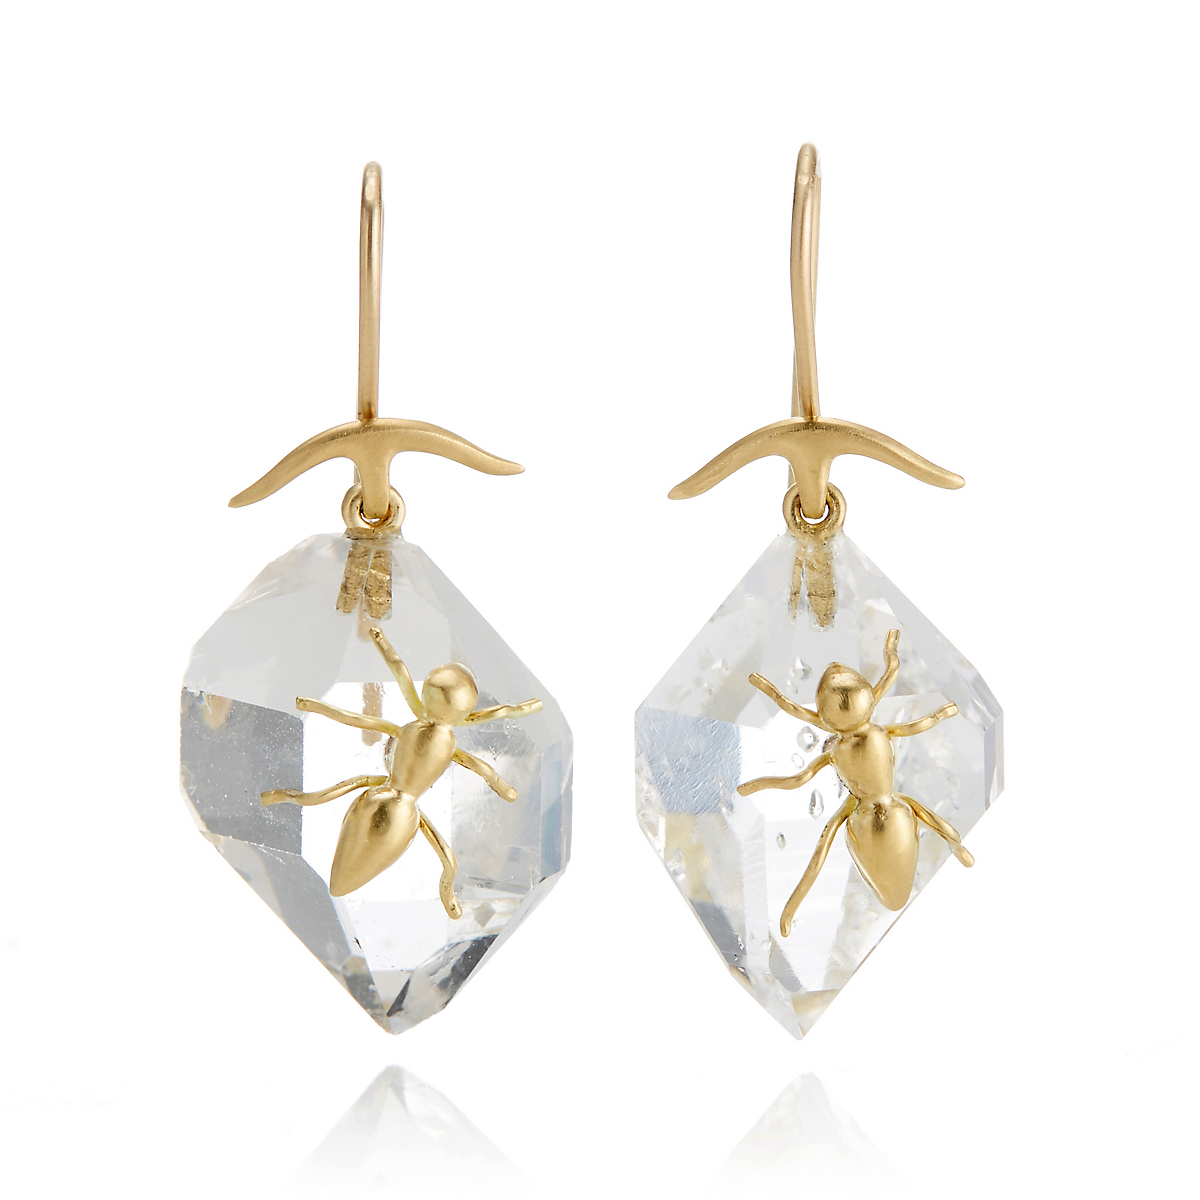 Gabriella Kiss Herkimer Quartz Gold Ant Drop Earrings